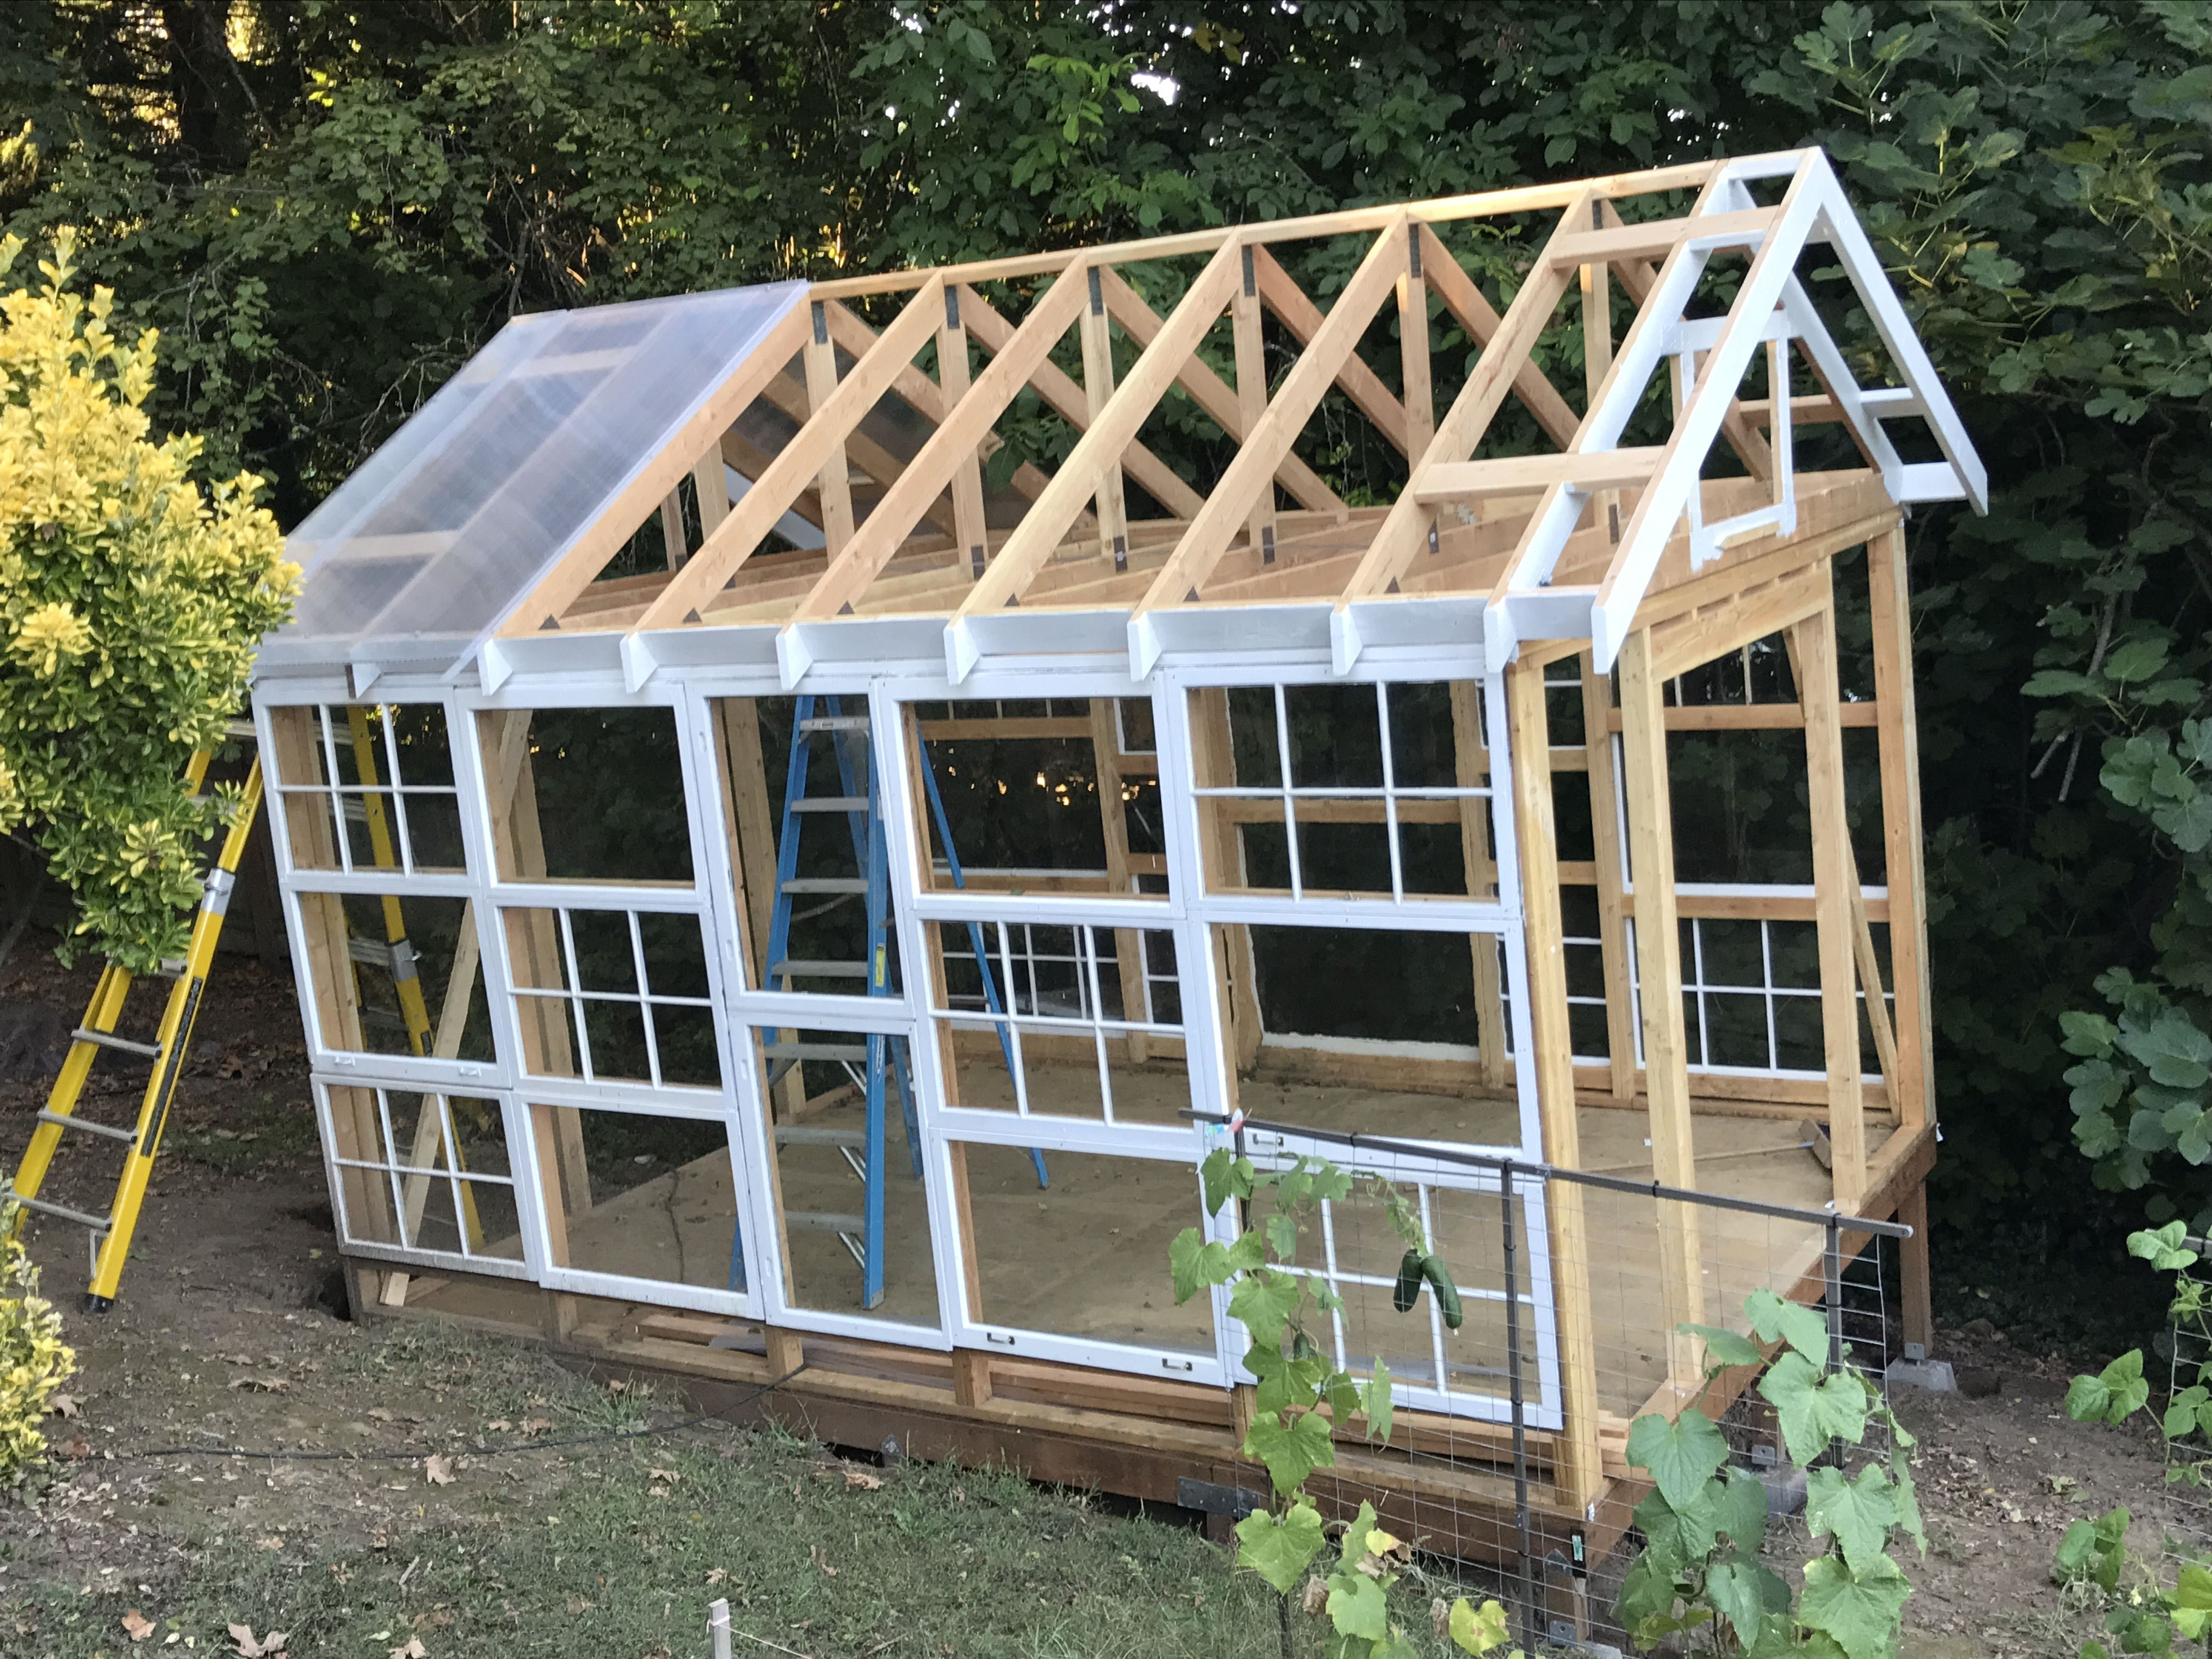 Top Five Craigslist Farm And Garden Waco Tx By Owner